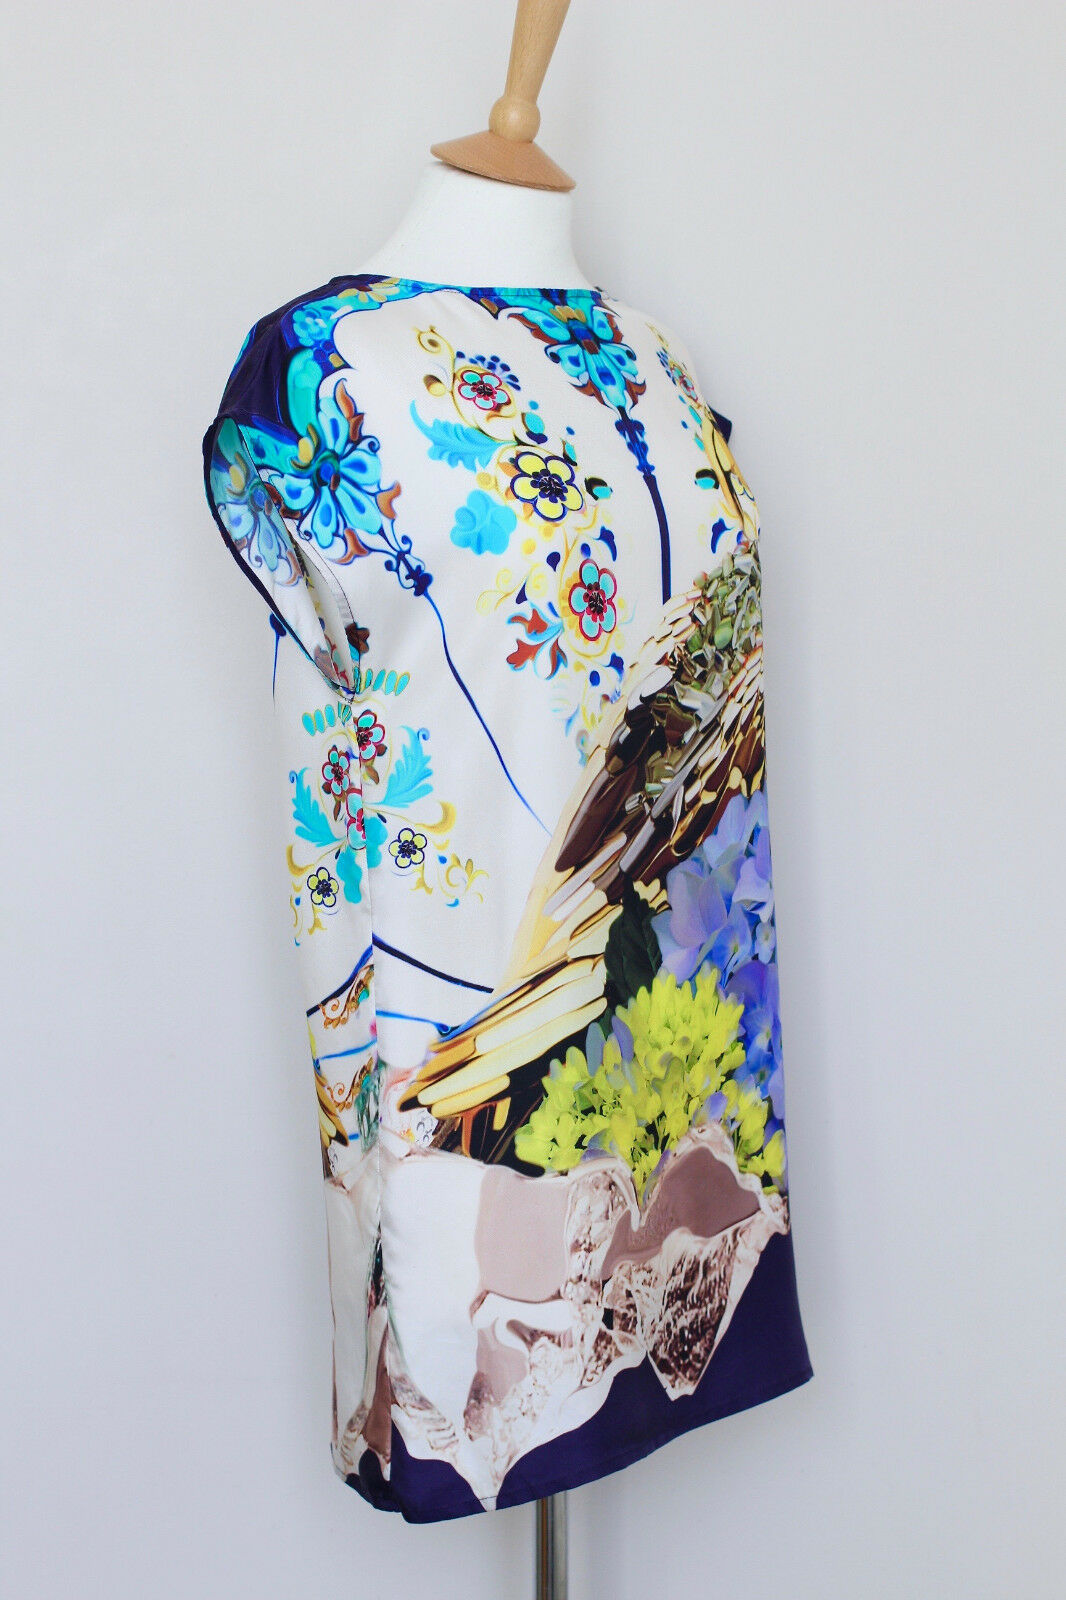 MARY KATRANTZOU Topshop Topshop Topshop bluee white yellow silk eagle floral tunic dress S Small ff7332